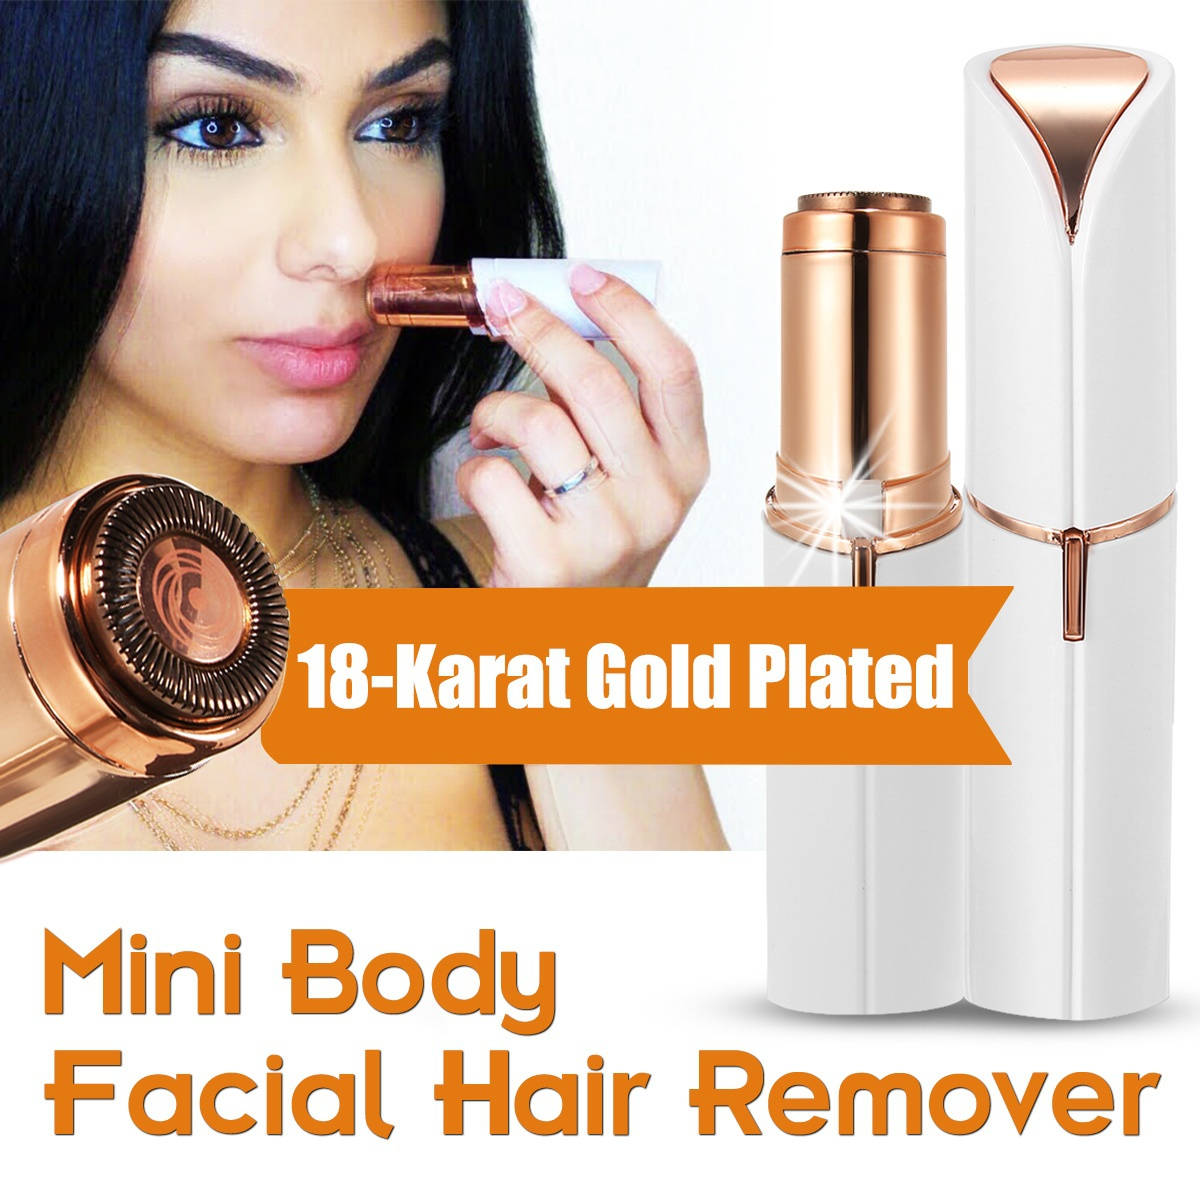 Epilator Electric Facial Hair Remover Shaver Personal Face Care Mini Painless Women Beauty Tools ...